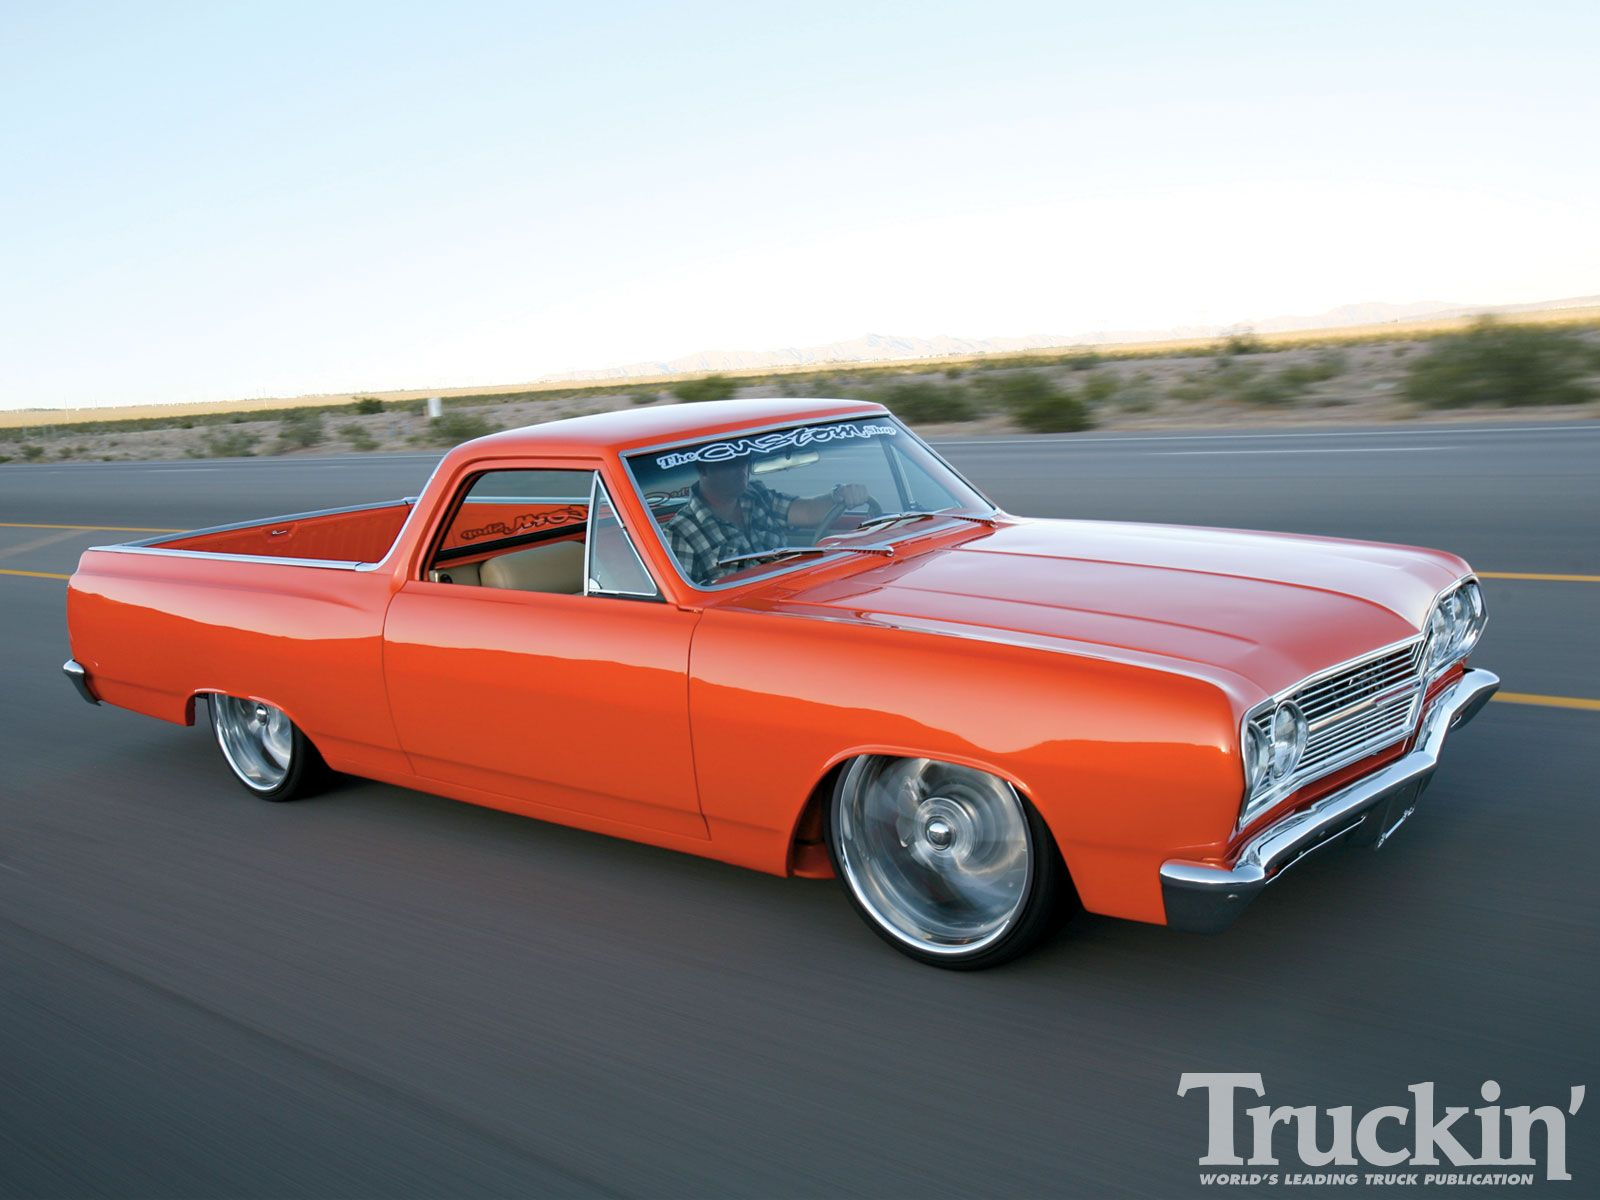 136 best old skool el Camino images on Pinterest | Driveways ...  Chevy El Camino Wiring Diagram on 1964 jeep cj5 wiring diagram, 1964 mercury comet wiring diagram, 1964 pontiac lemans wiring diagram, 1964 olds cutlass wiring diagram, 1964 ford falcon wiring diagram, 1972 vw super beetle wiring diagram,